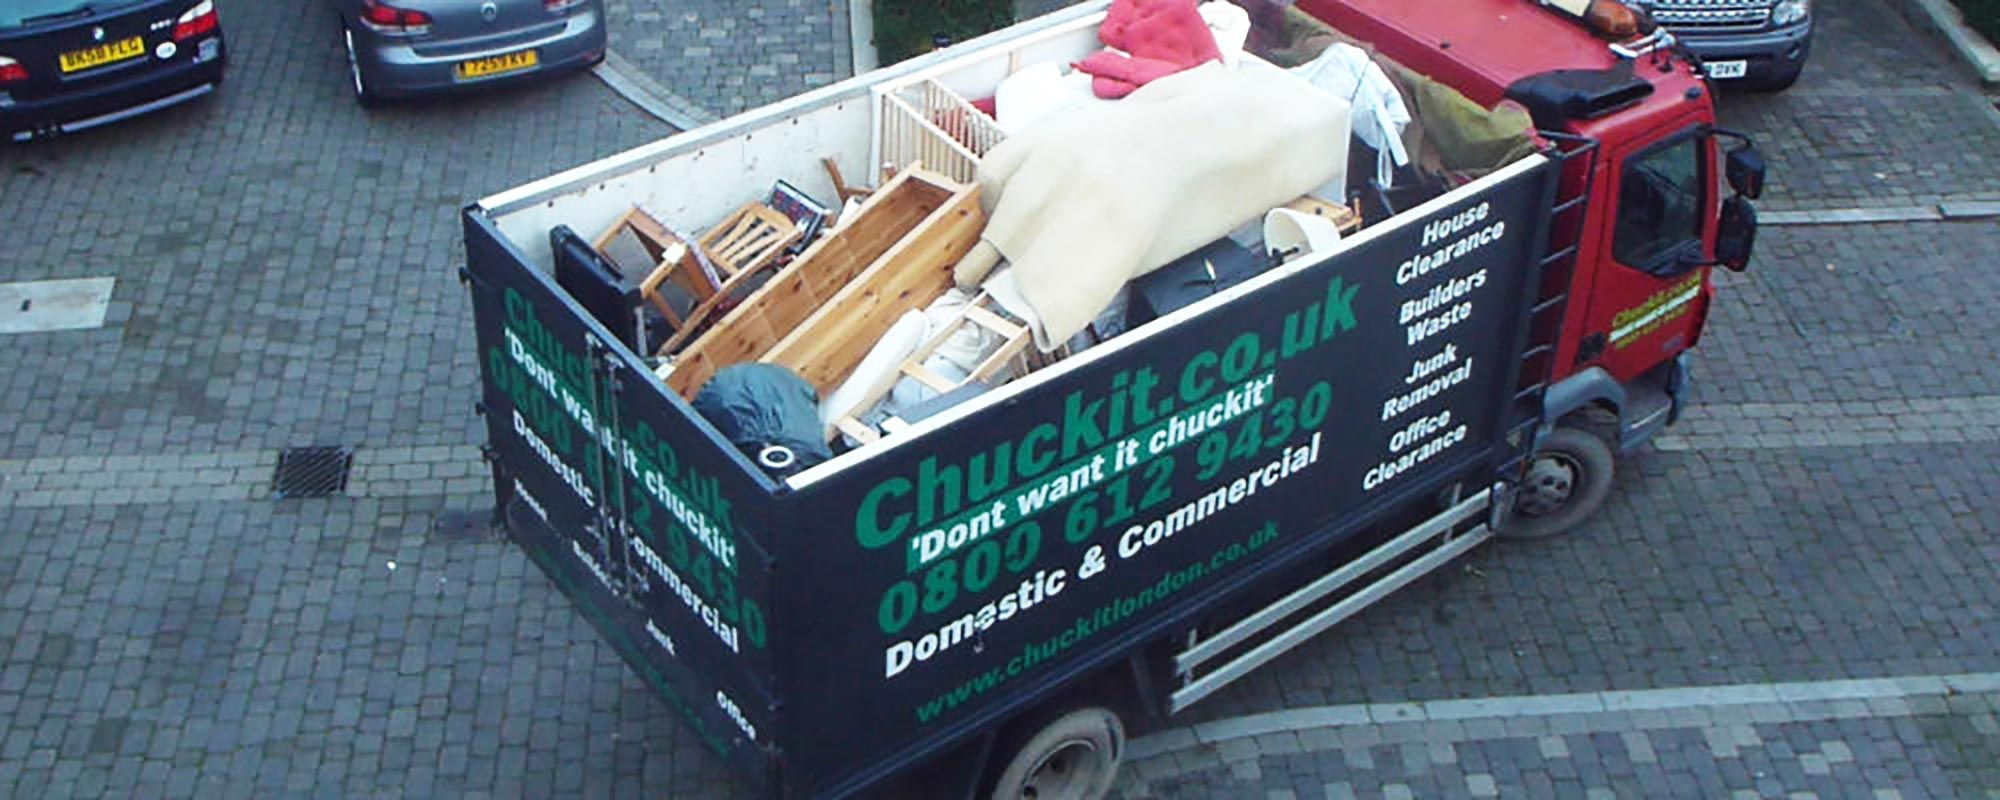 Skip Hire Alternative London- Same Day Service By Chuckit.co.uk